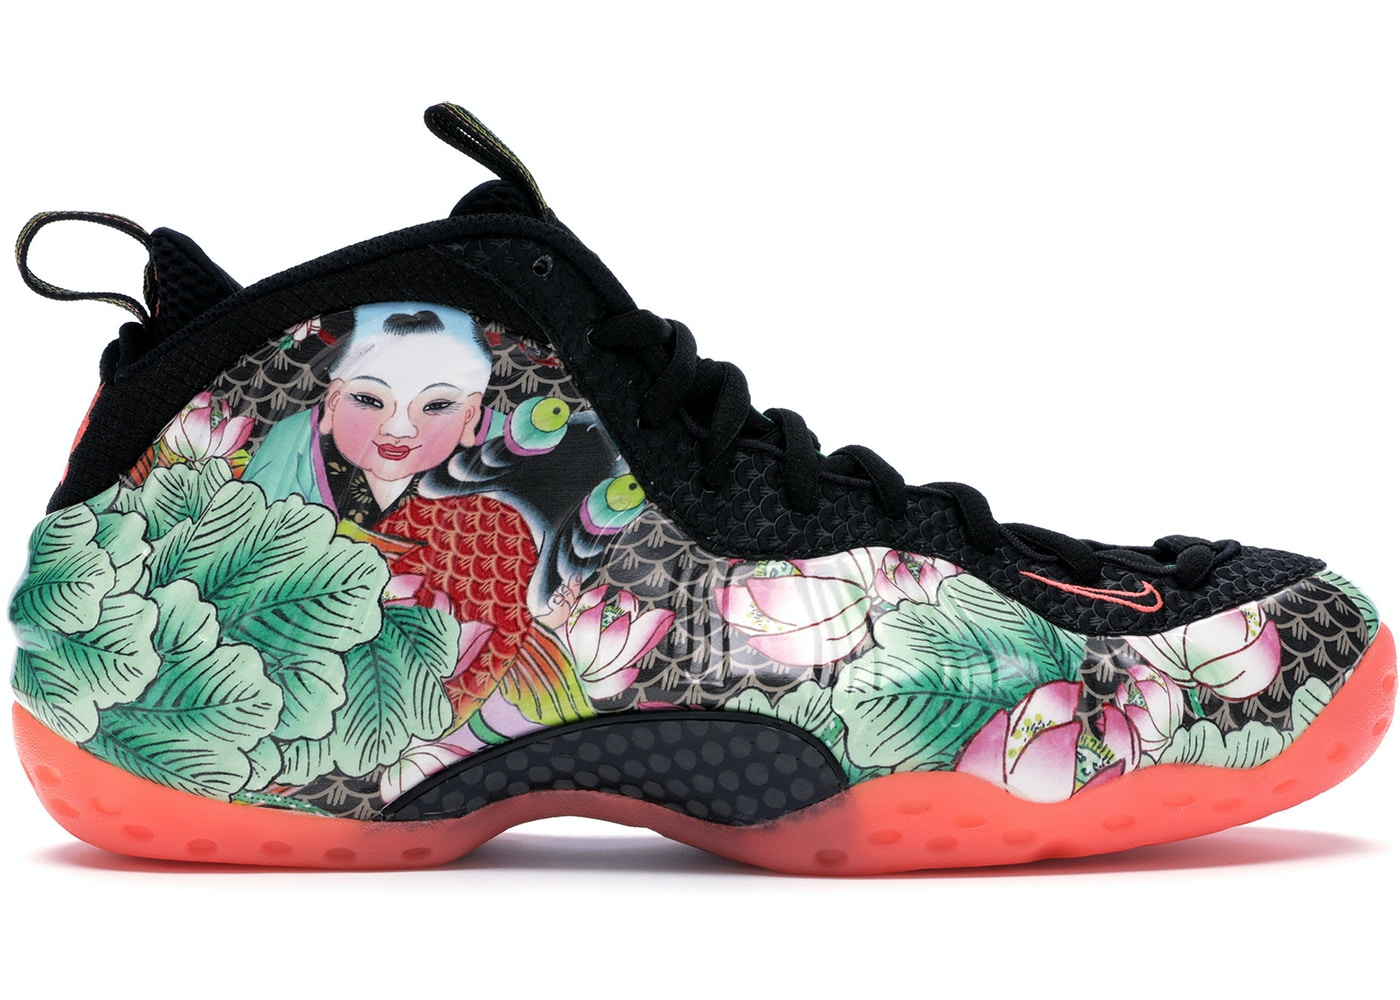 a2cec9457eb Air Foamposite One Tianjin - 744307-001